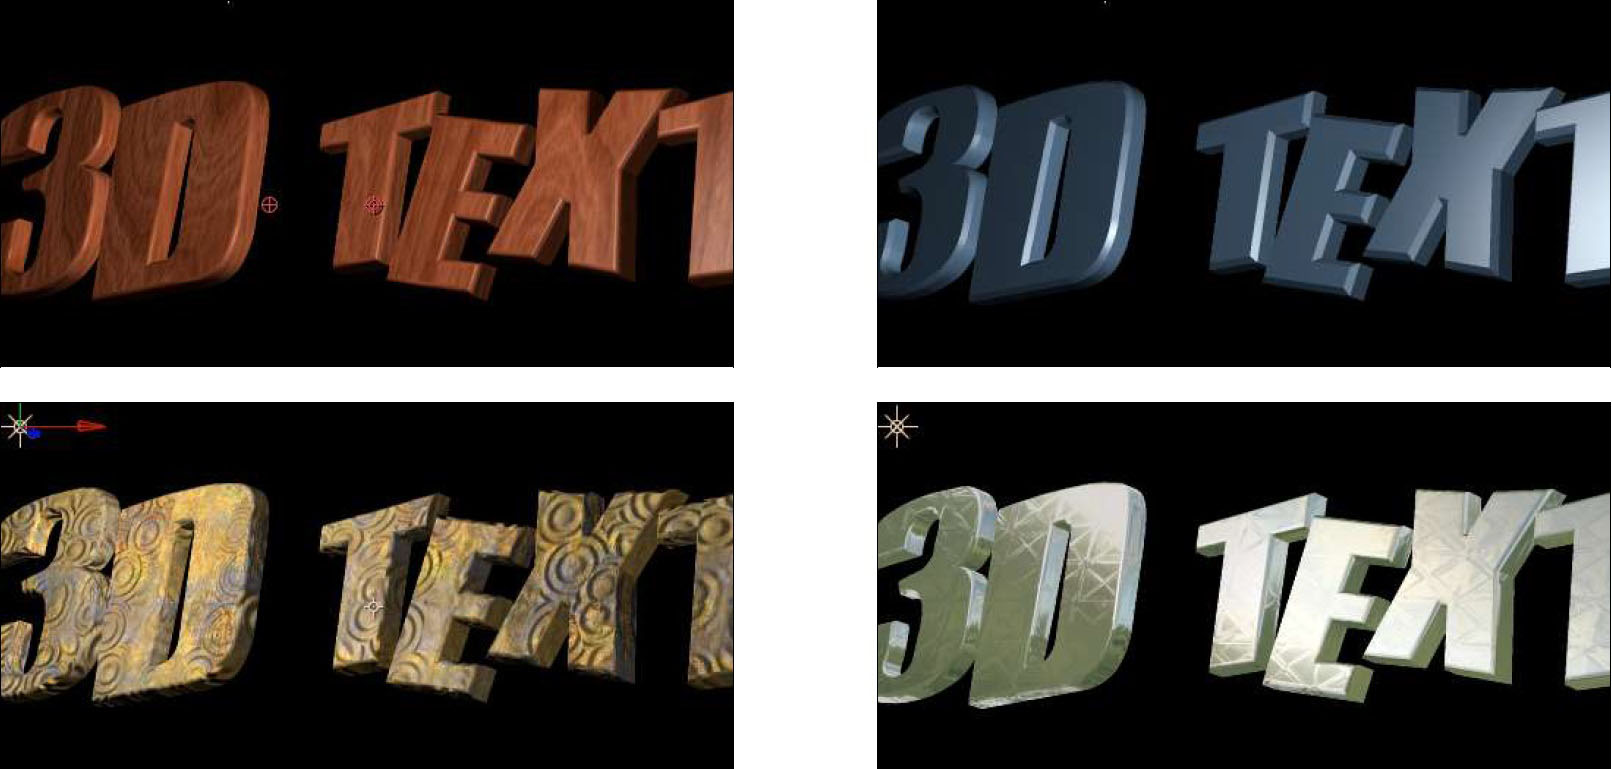 Extruded Text 9